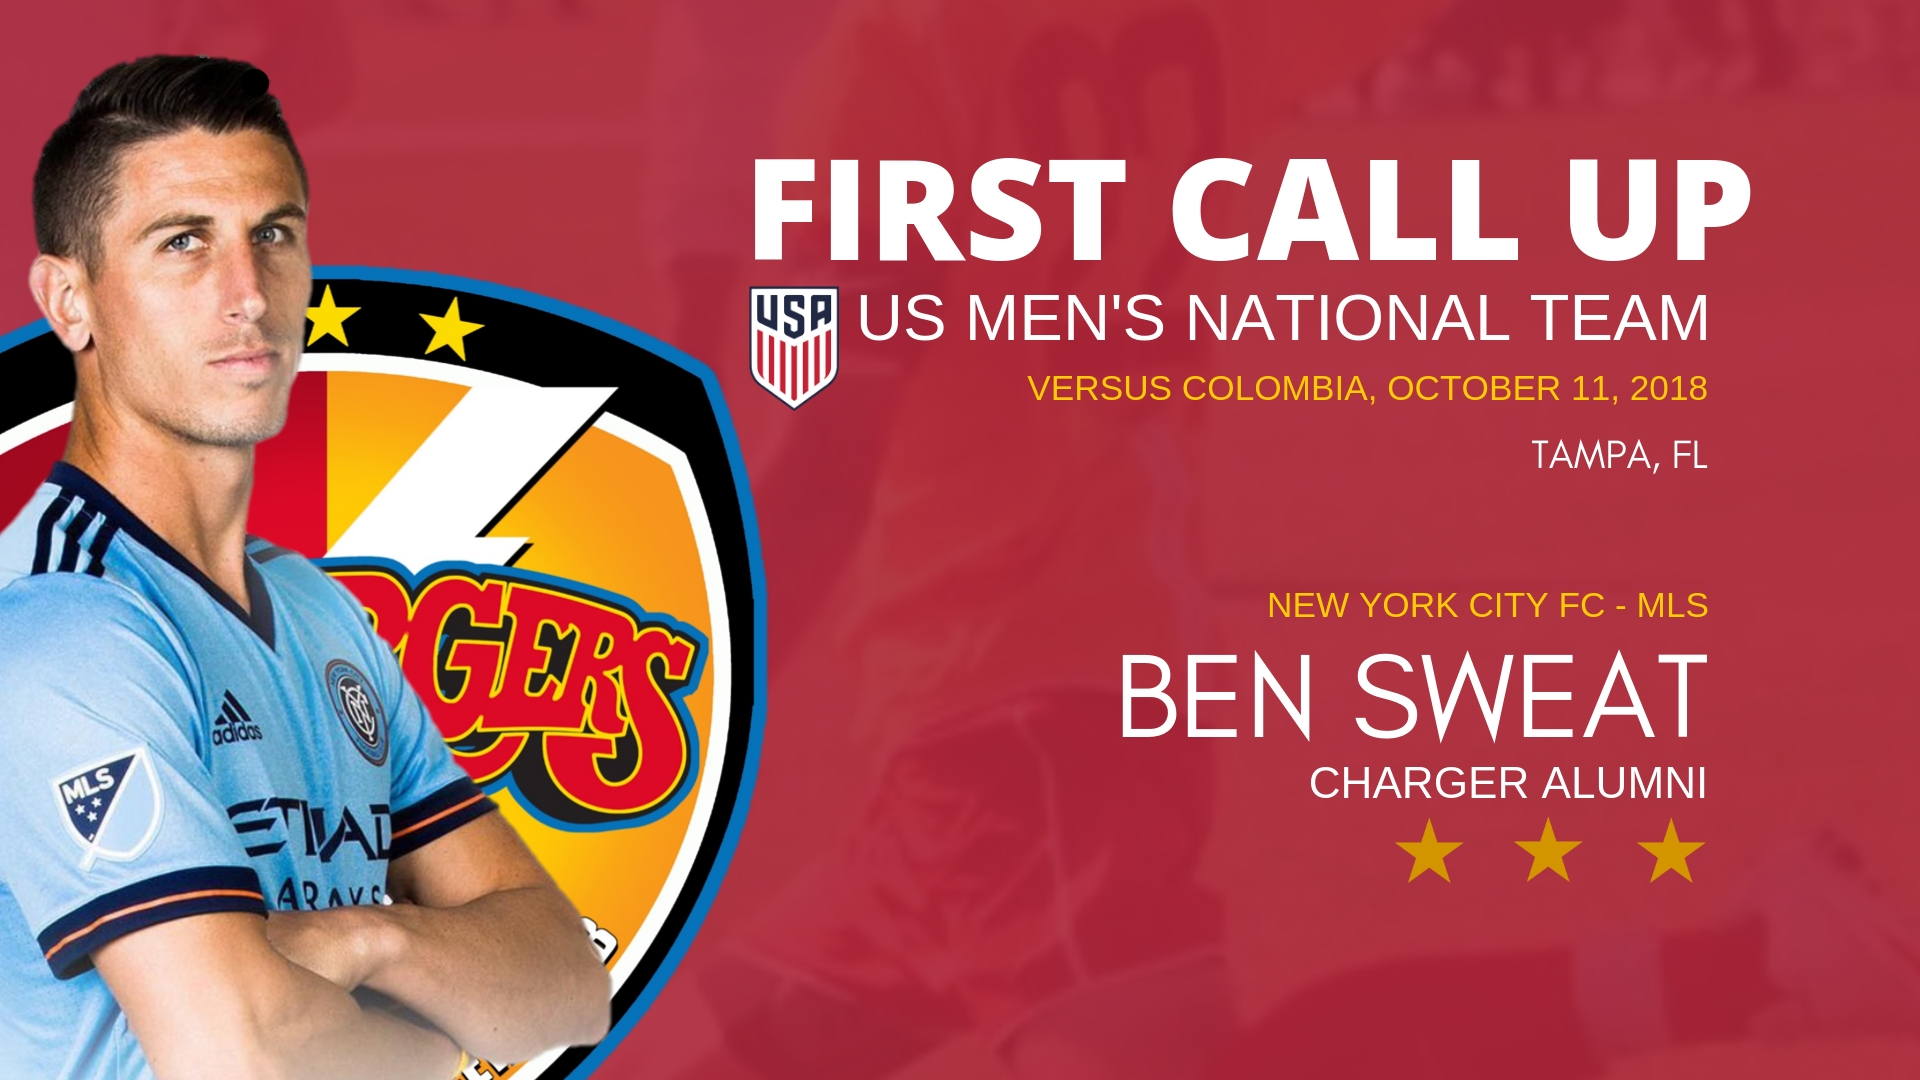 Chargers Alum Ben Sweat to USA Men's Nat'l Team